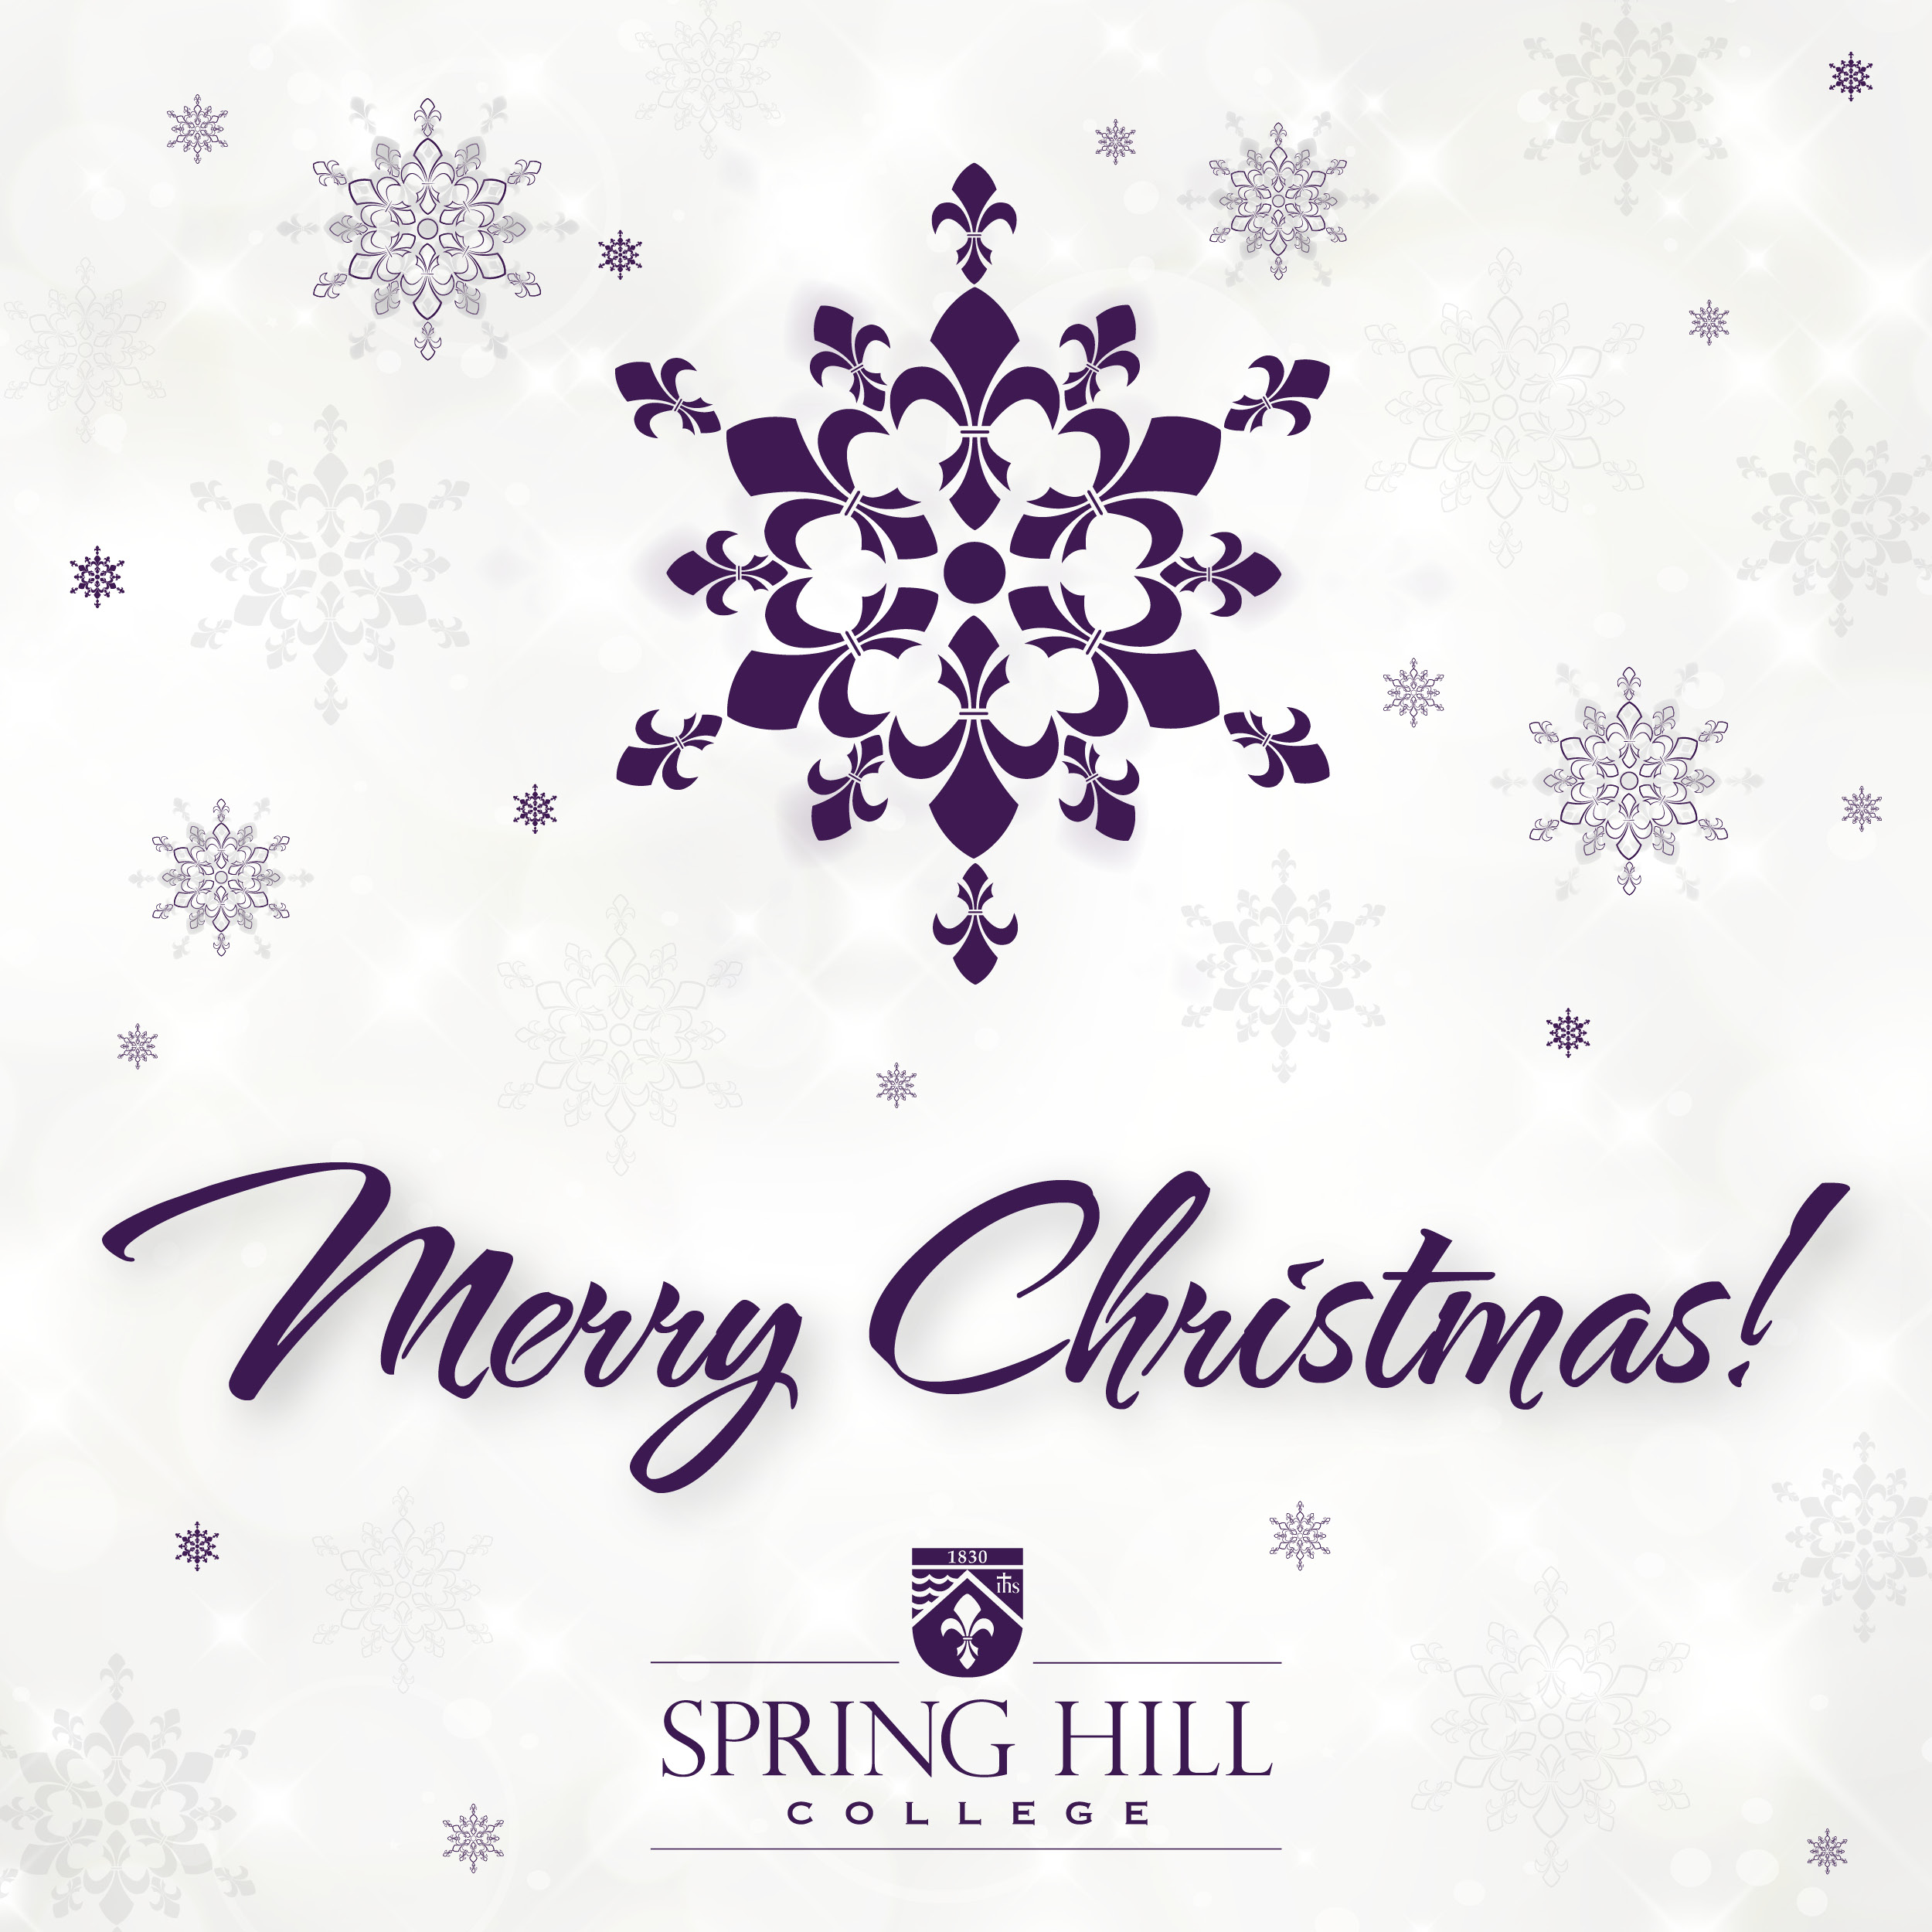 Christmas greetings from Spring Hill College (photo by Spring Hill College)